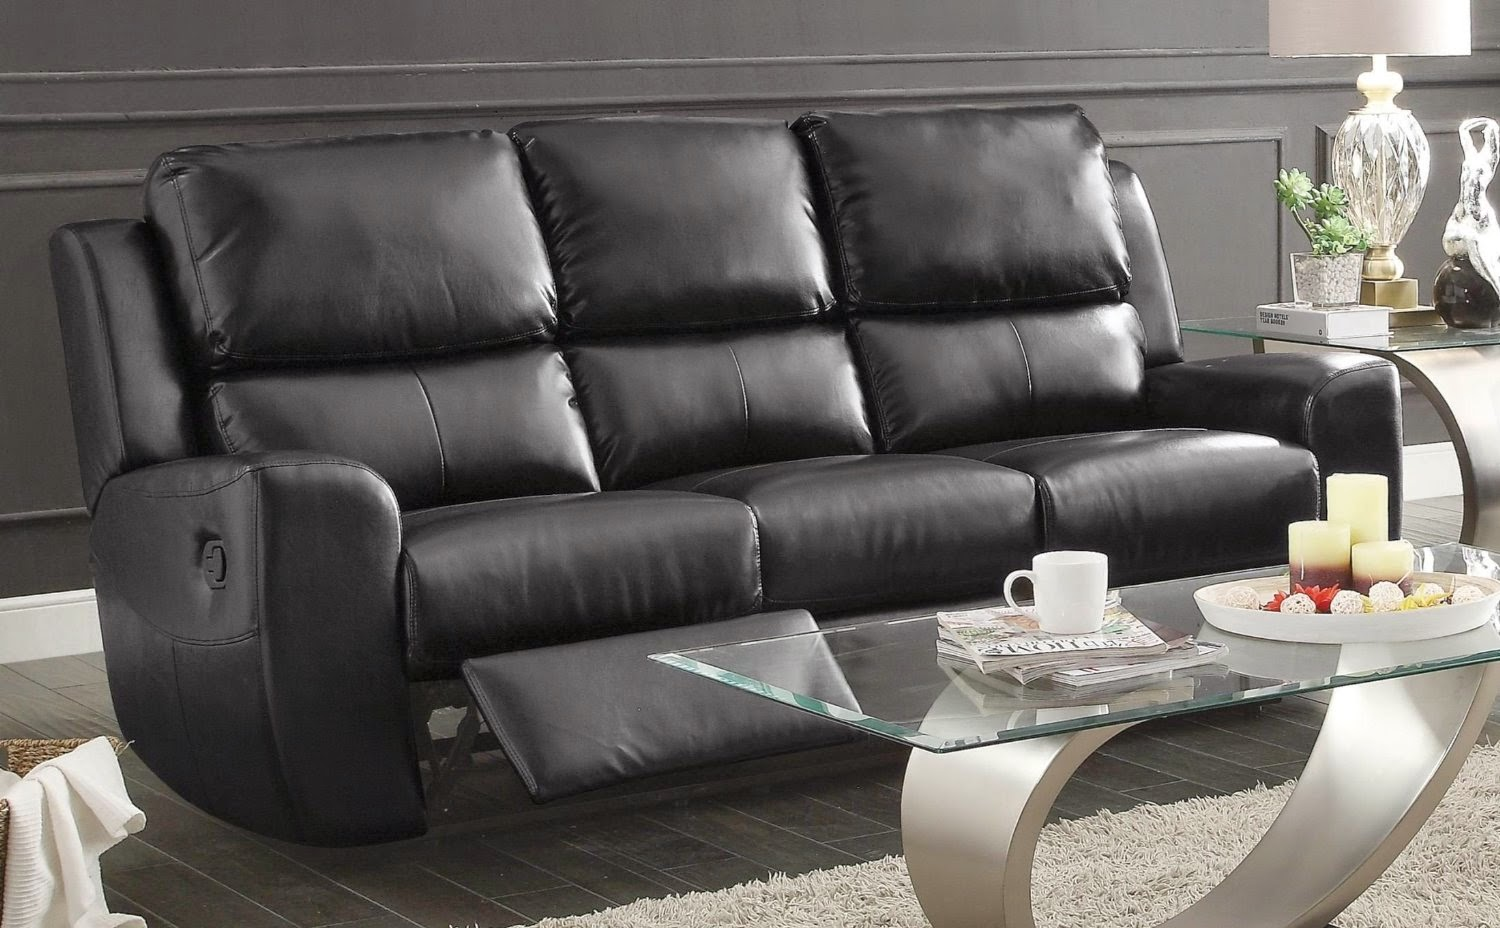 Reclining Sofa Sets Sale: Curved Leather Reclining Sofa ...